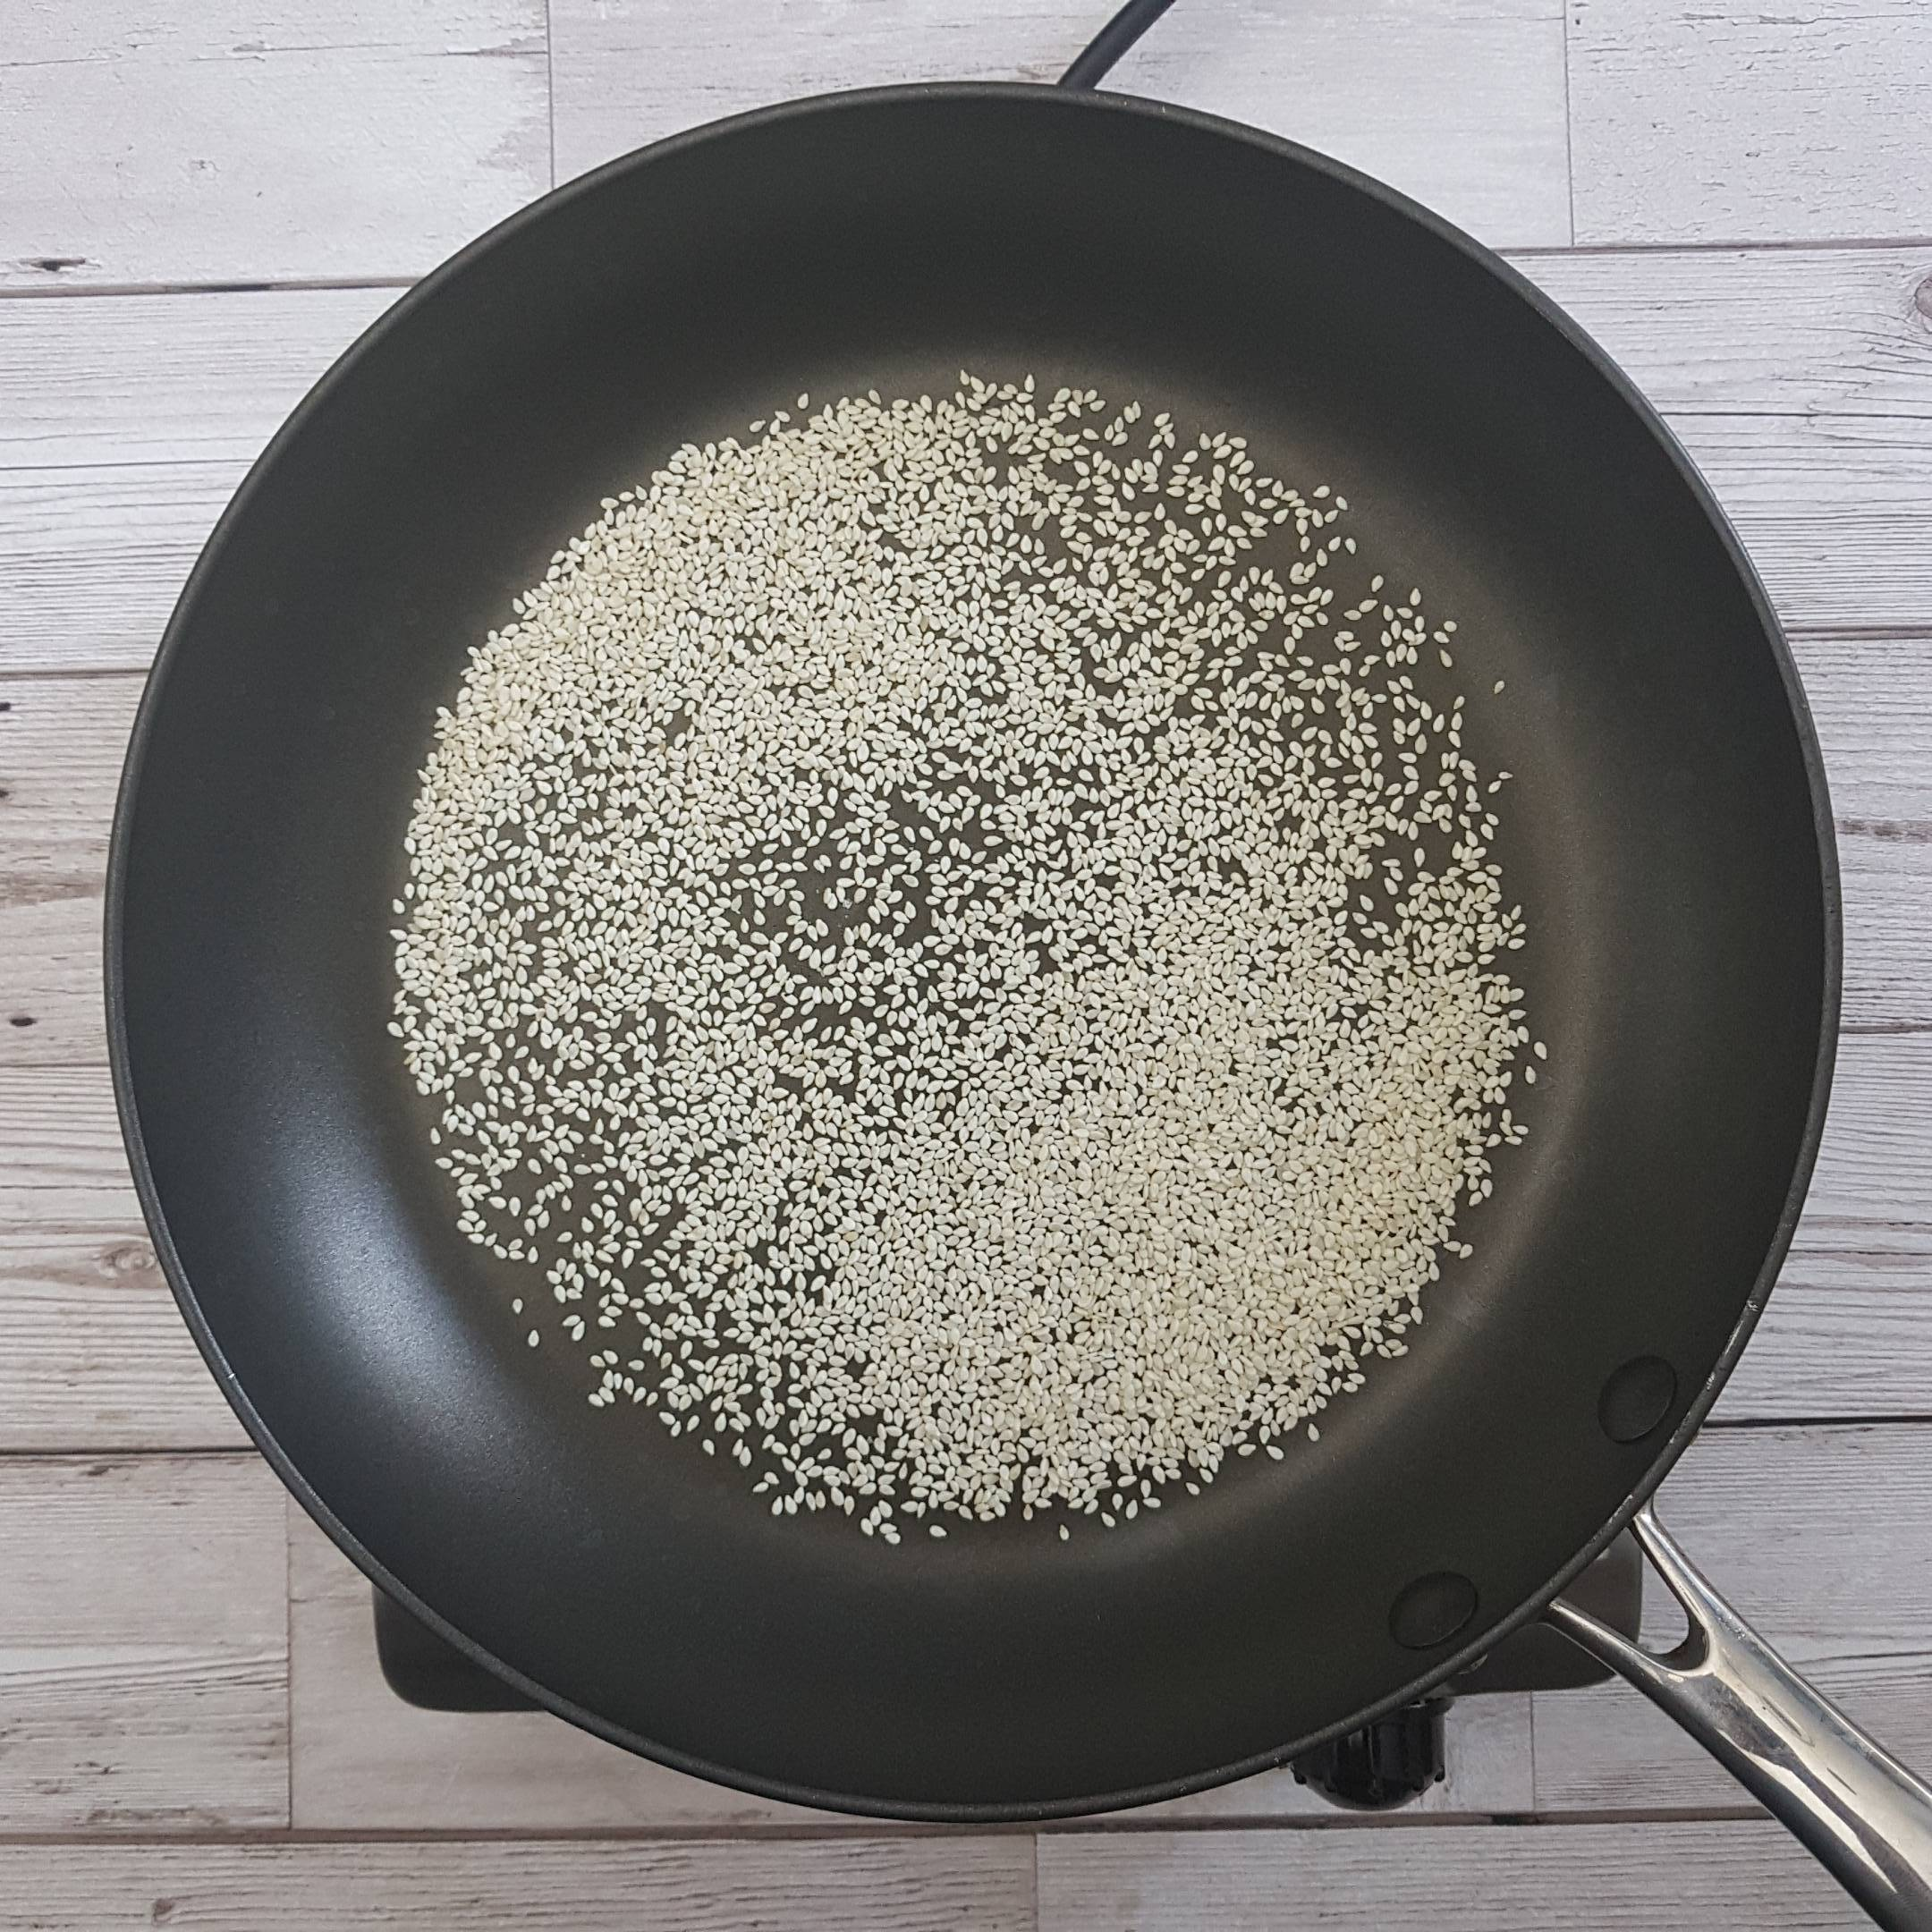 Add 2 tbsp sesame seeds to a non-stick frying pan and cook for 1-2 minutes until golden brown. Move them around so they do not burn.